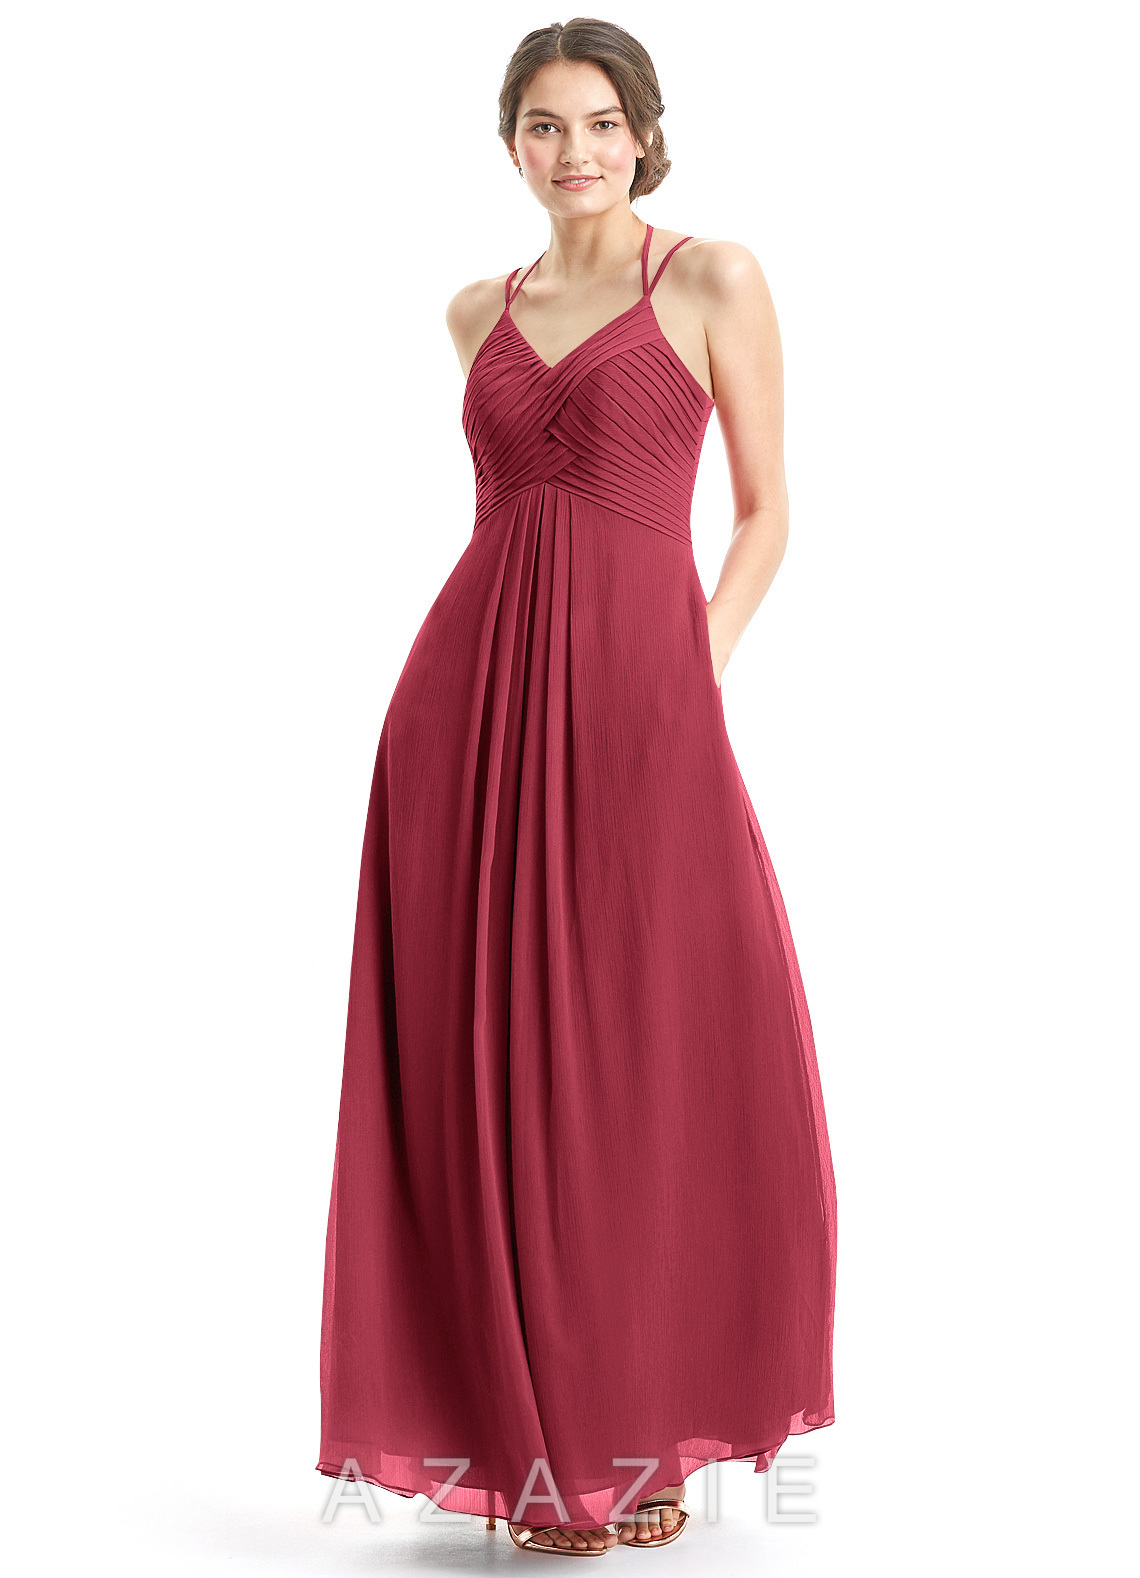 Home Bridesmaid Dresses Azazie Eden Loading Zoom